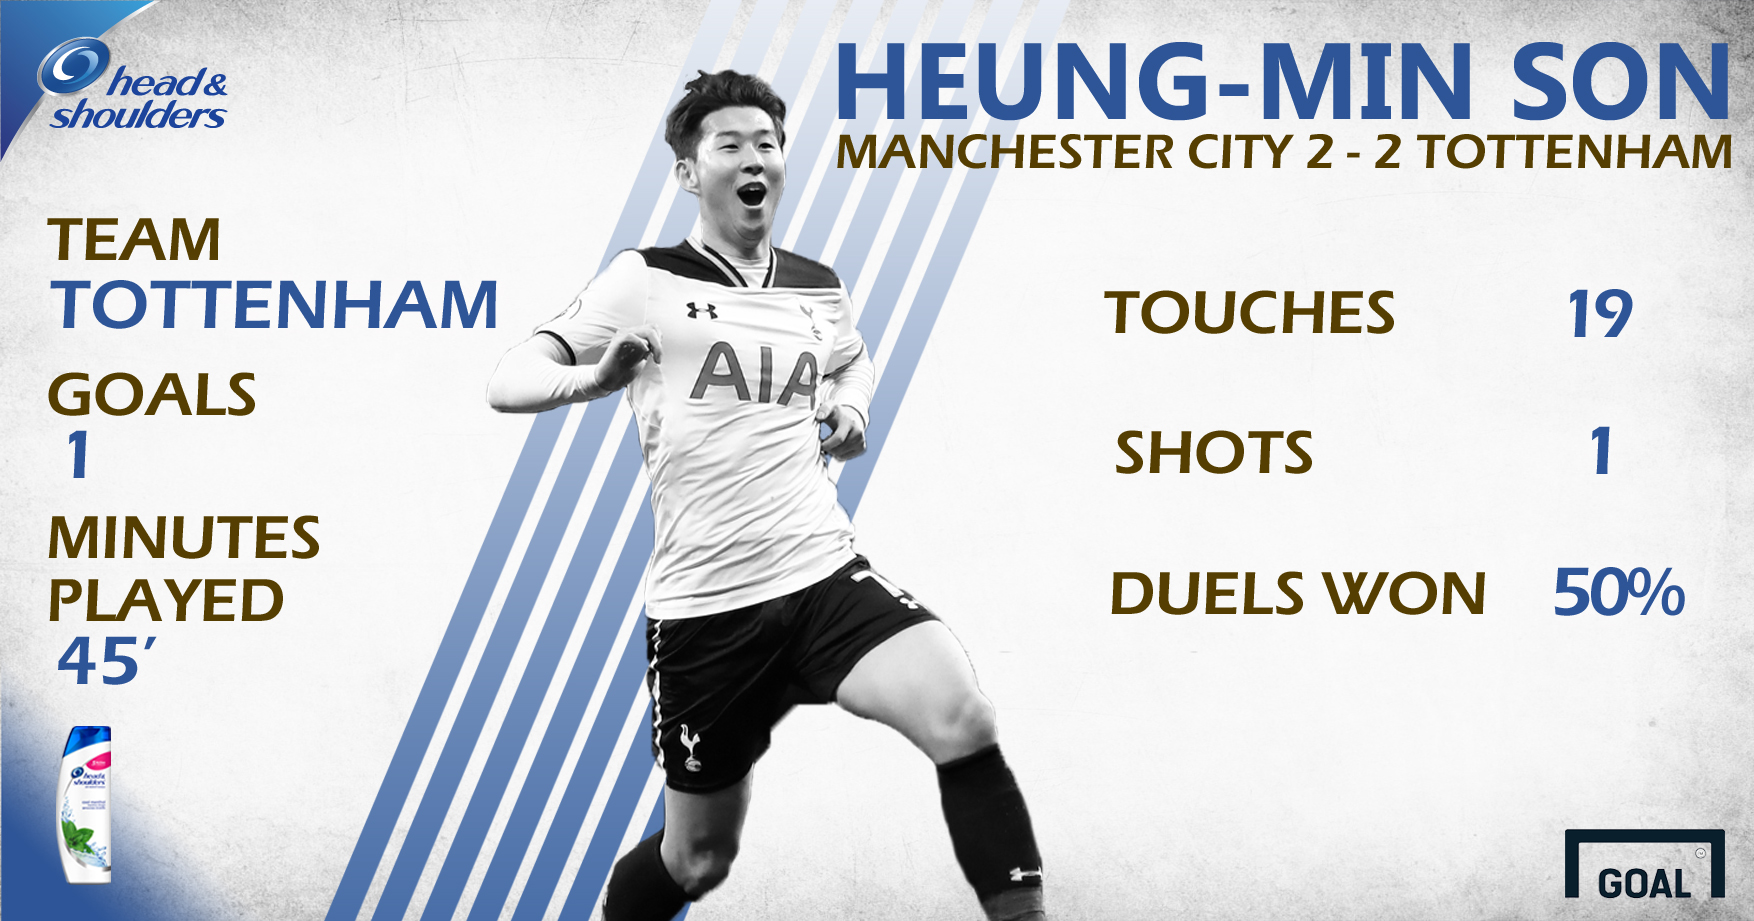 Head & Shoulders - Post Match - Heung-Min Son